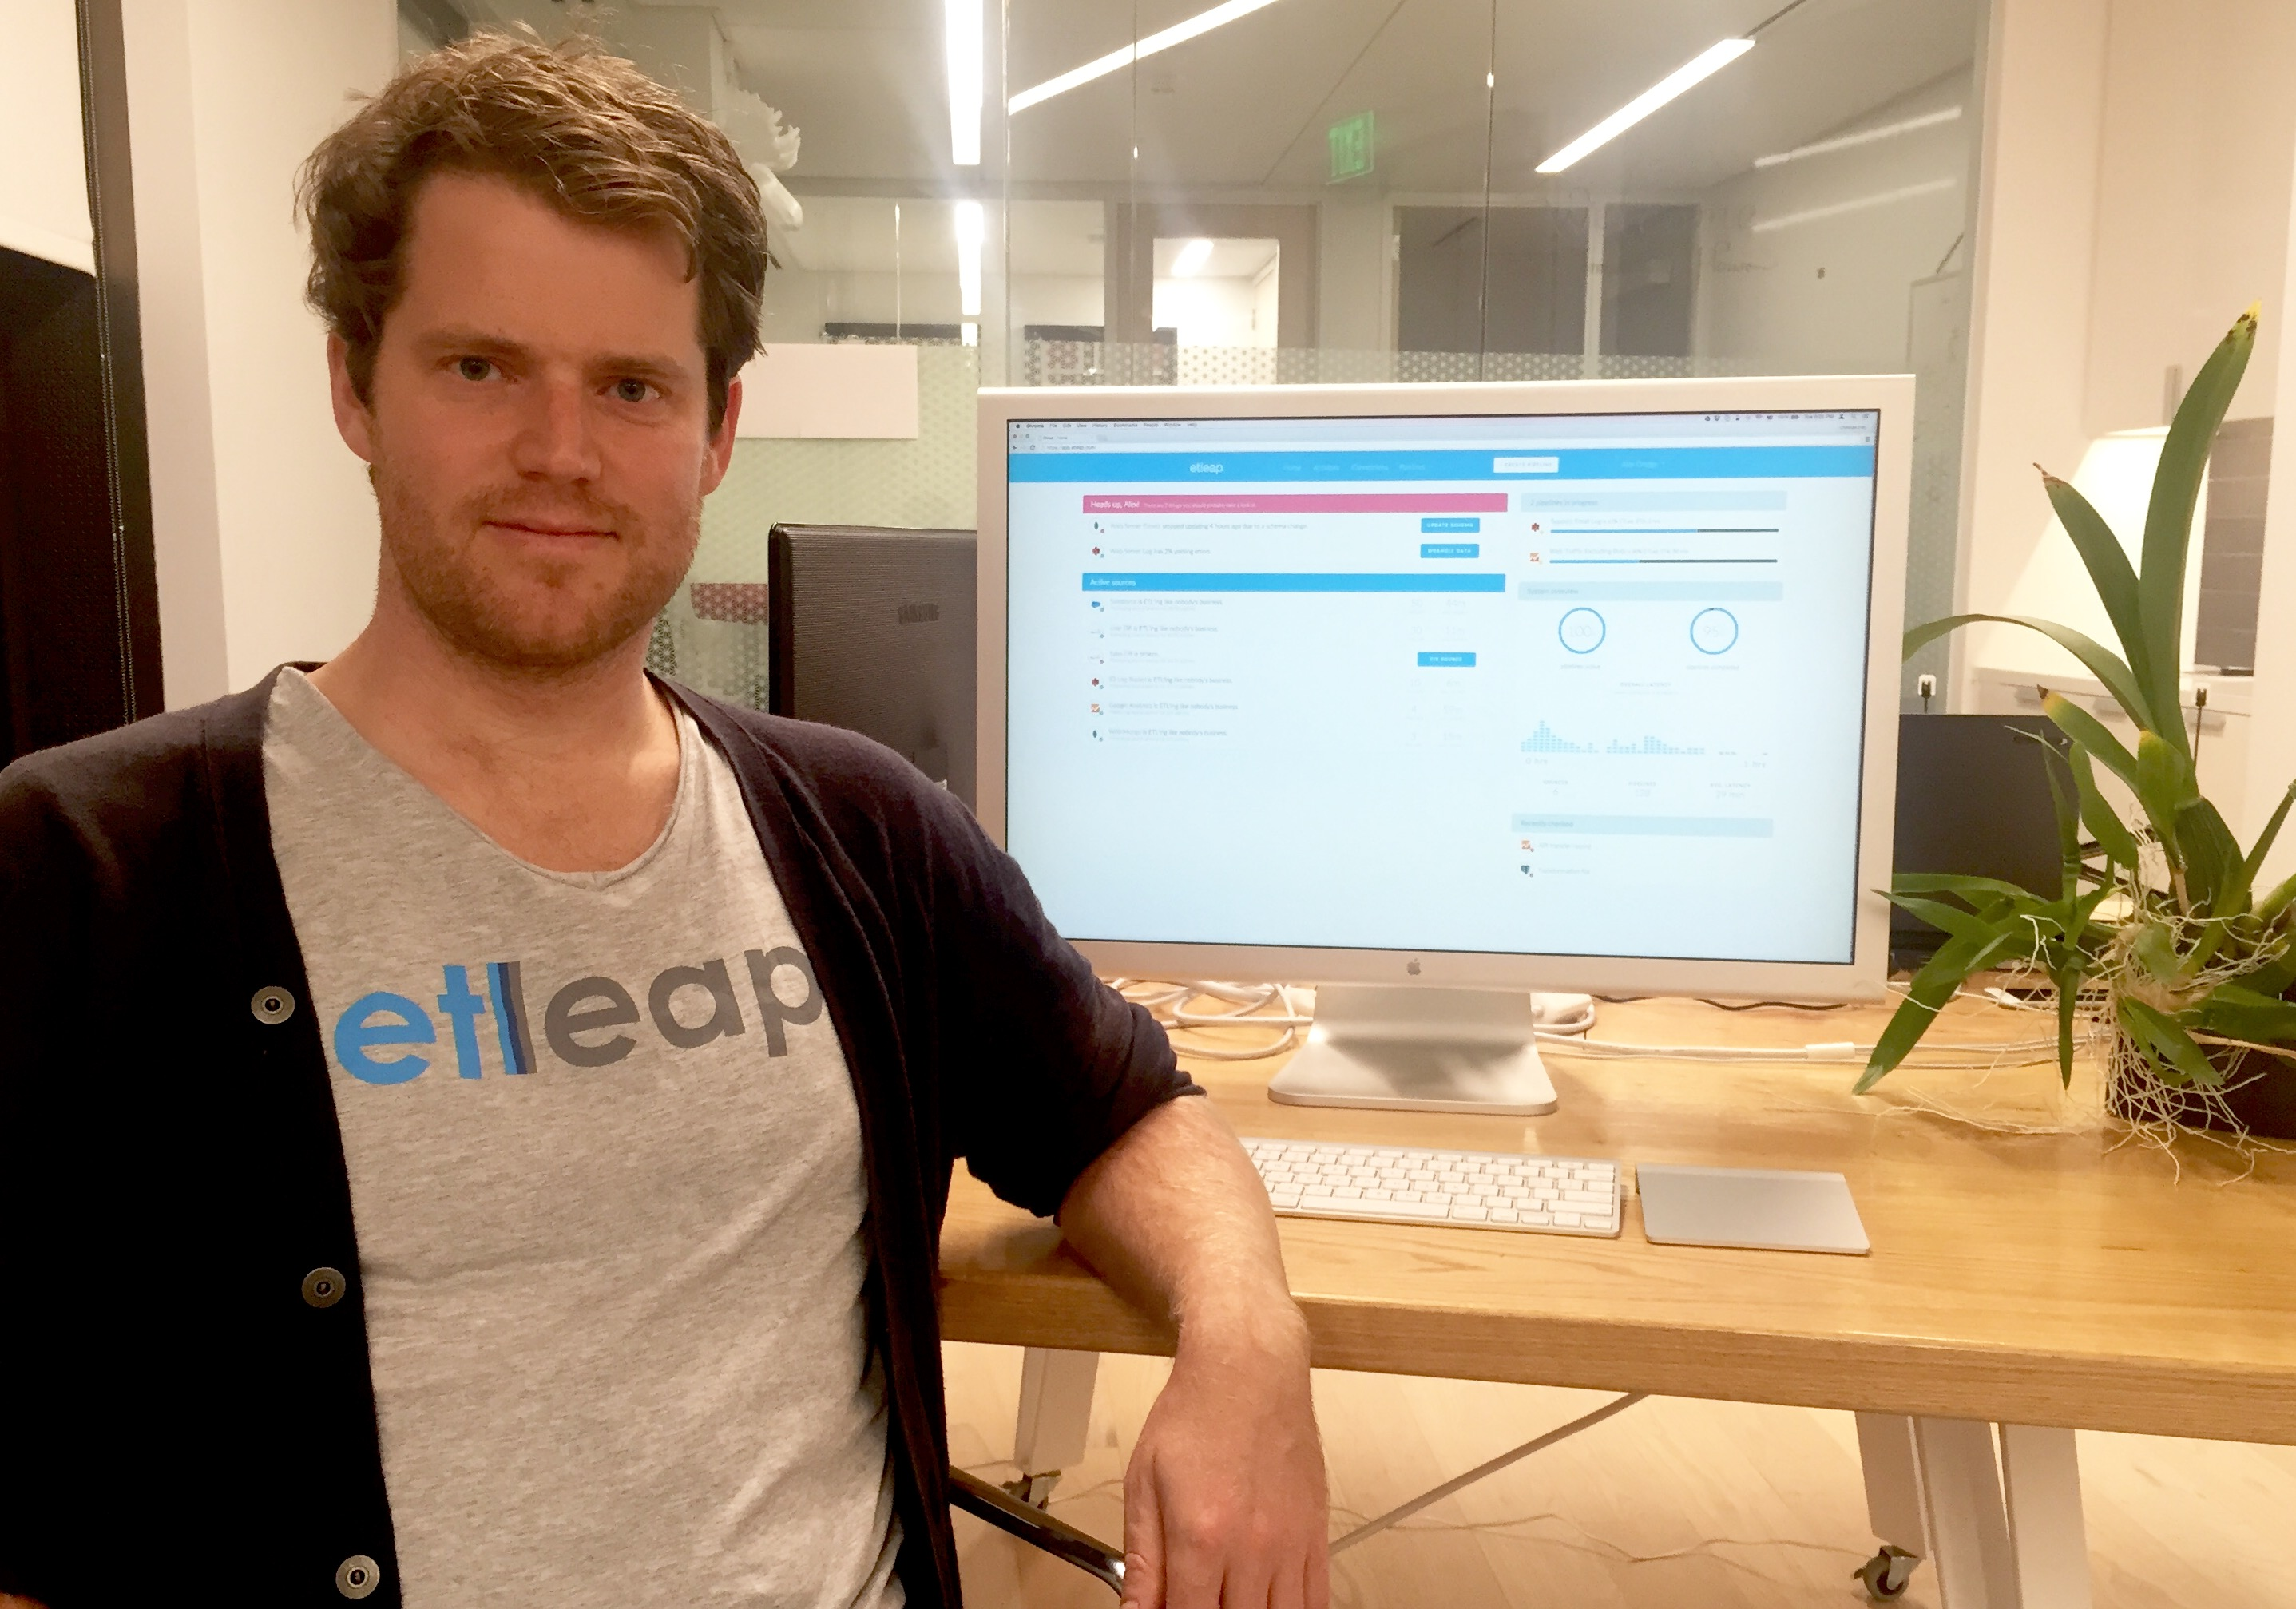 Etleap founder and chief executive Christian Romming.